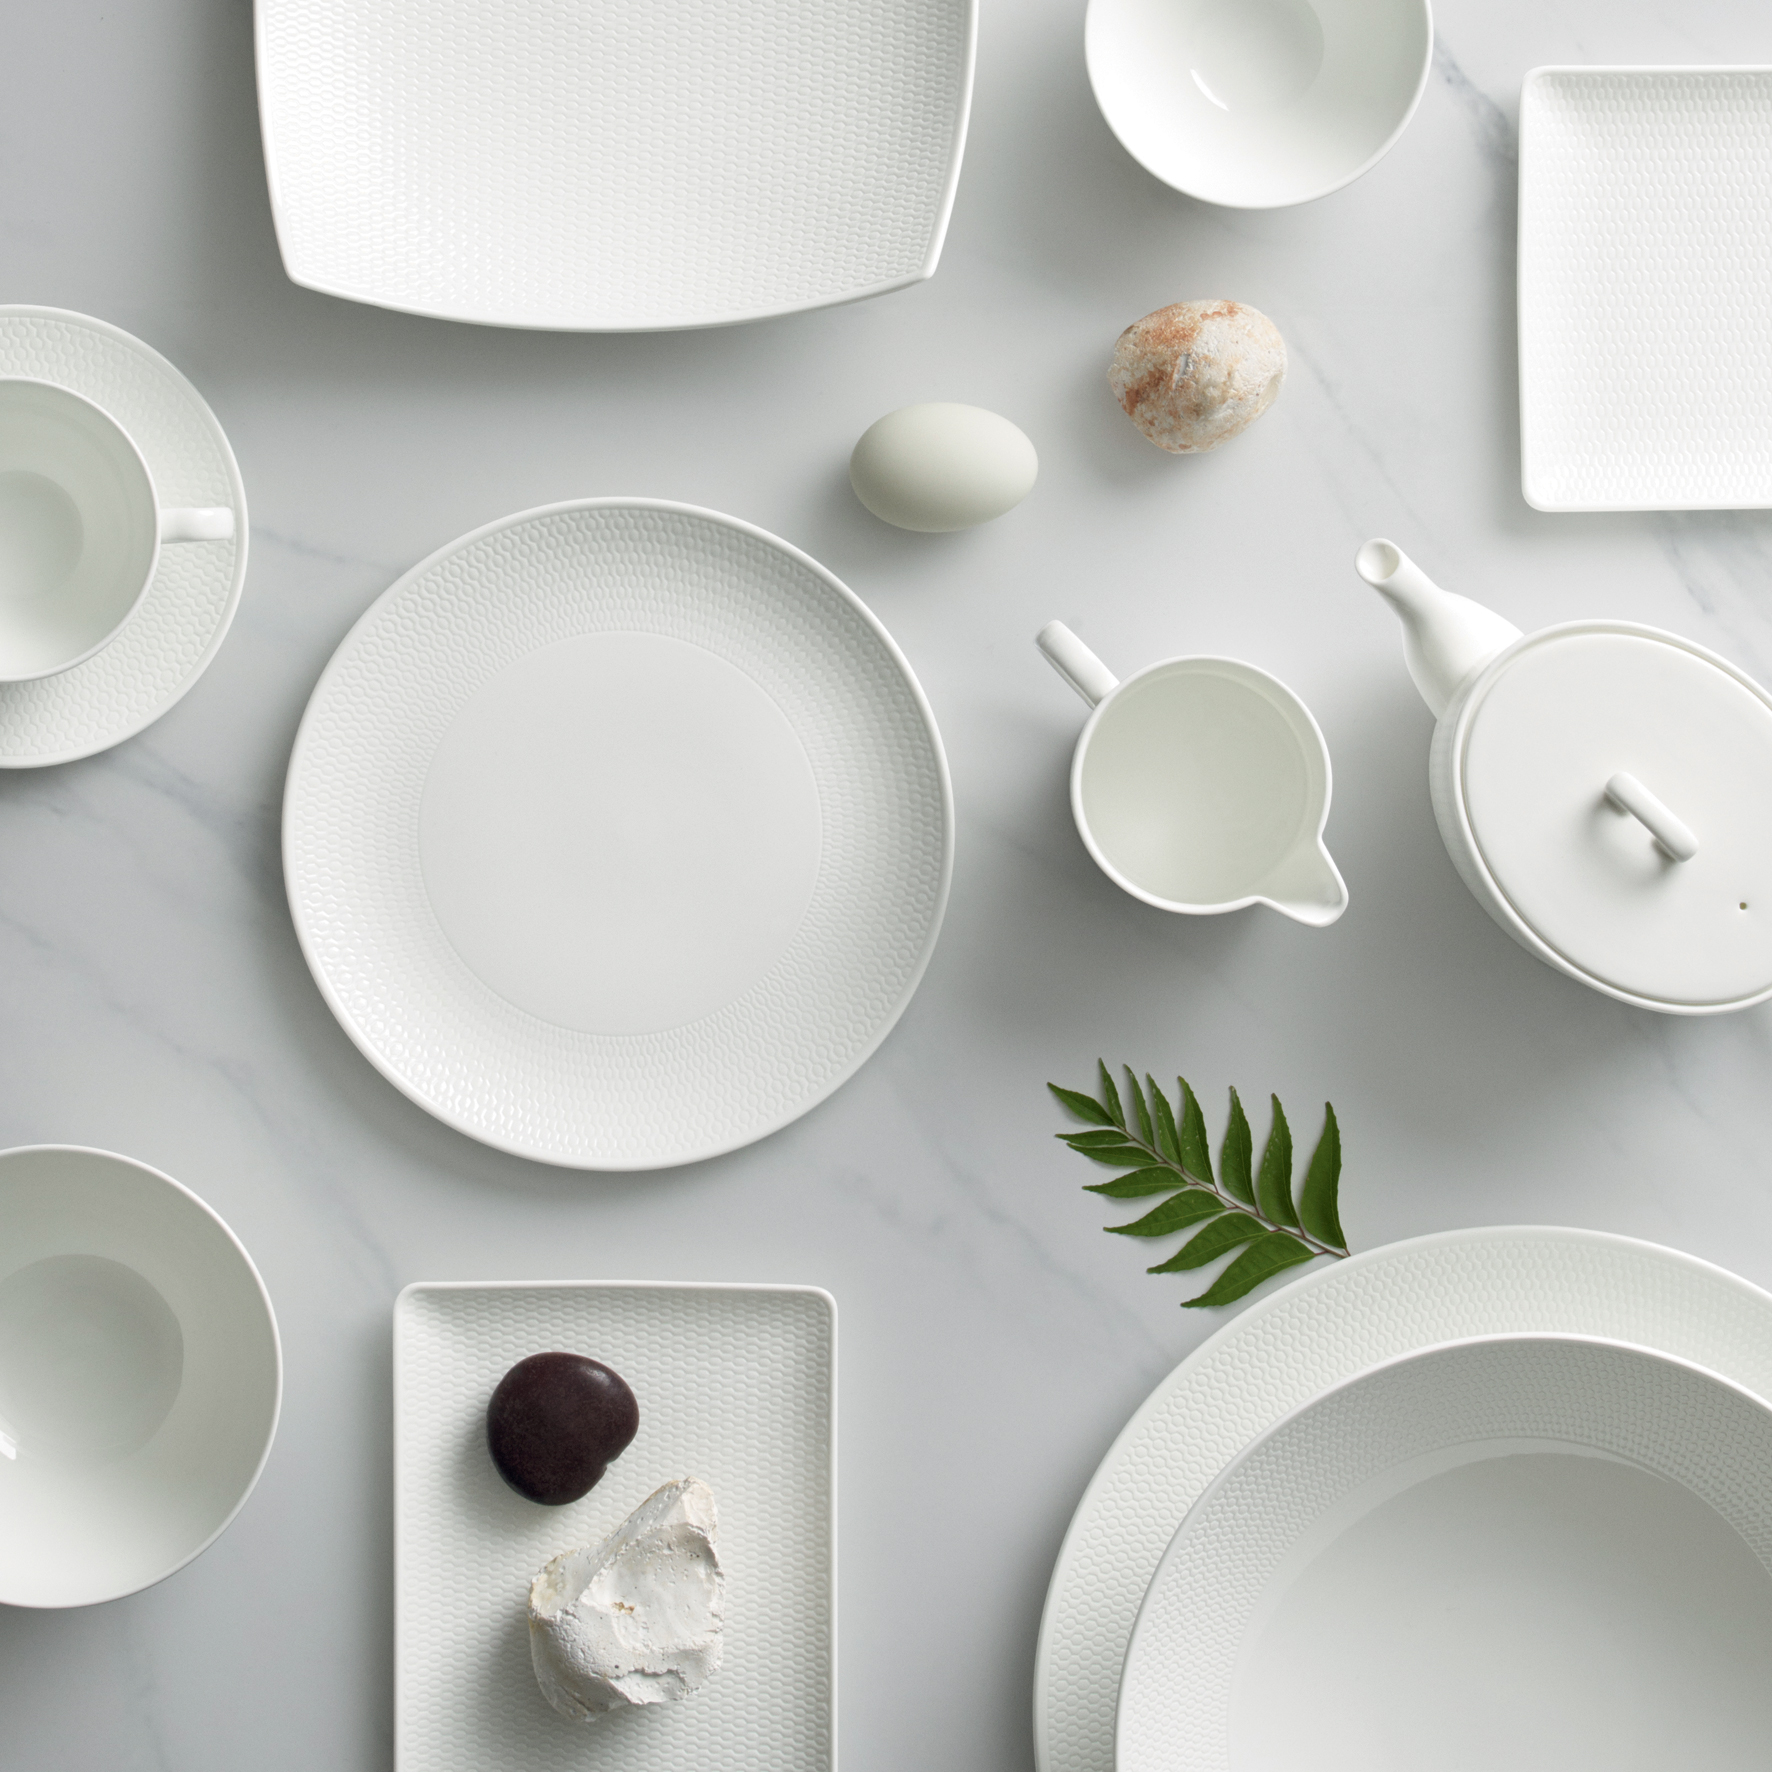 Wedgwood - Gio, contemporary table service made of elegant Fine Bone China with a particular carving texture created for modern home